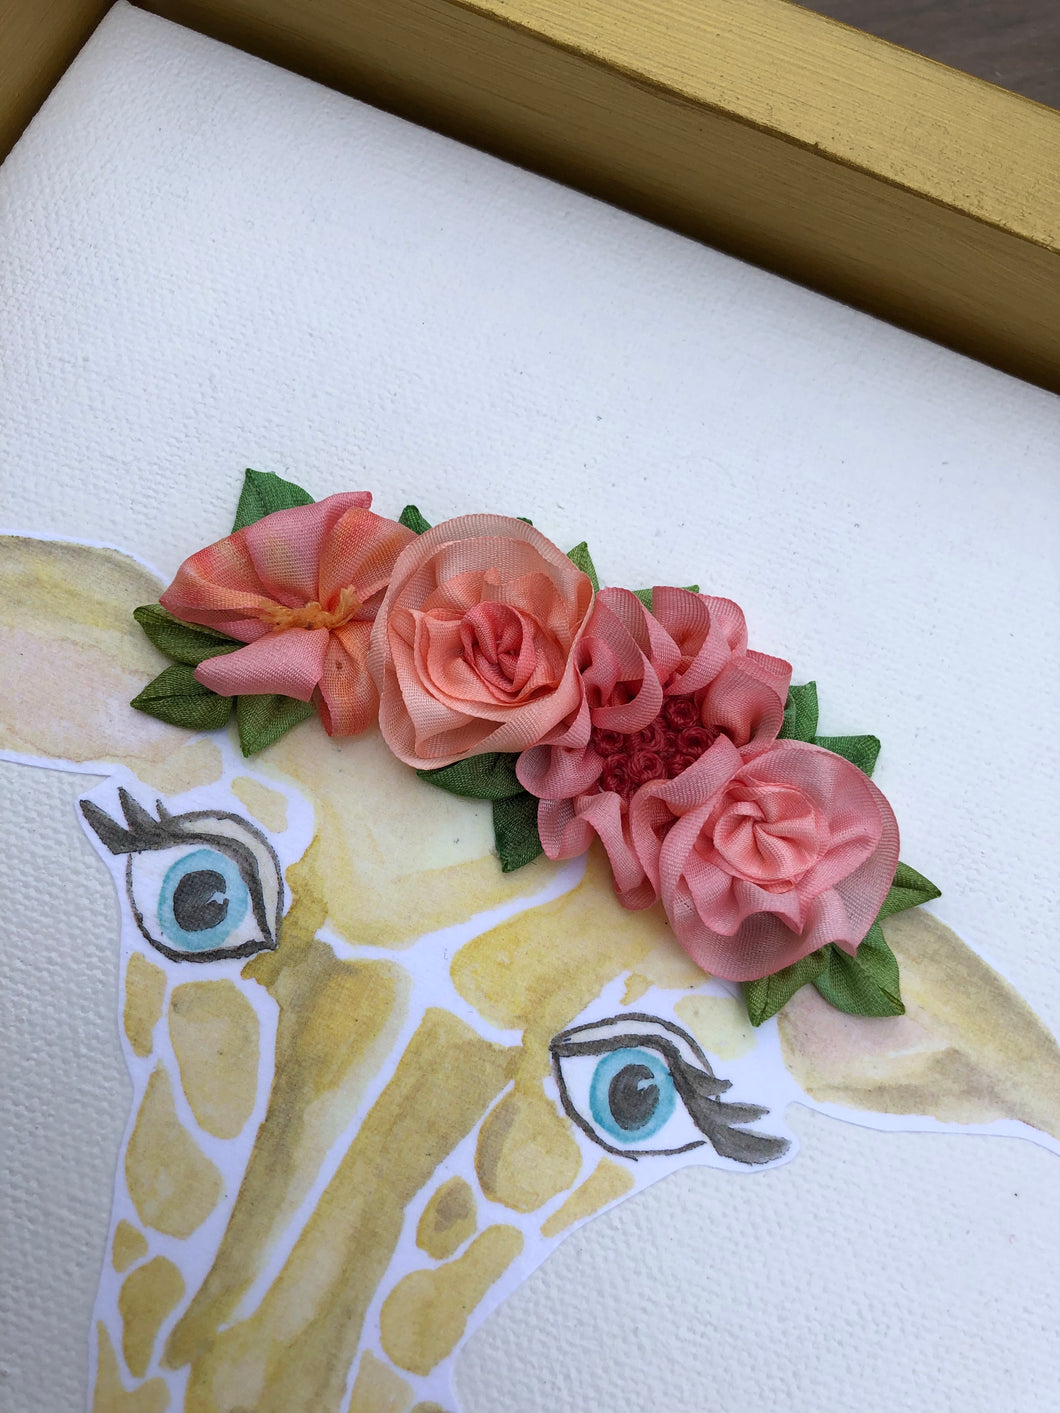 8x10 Giraffe With Pink Ribbon Flower Crown Genevieve Hayes Gifts